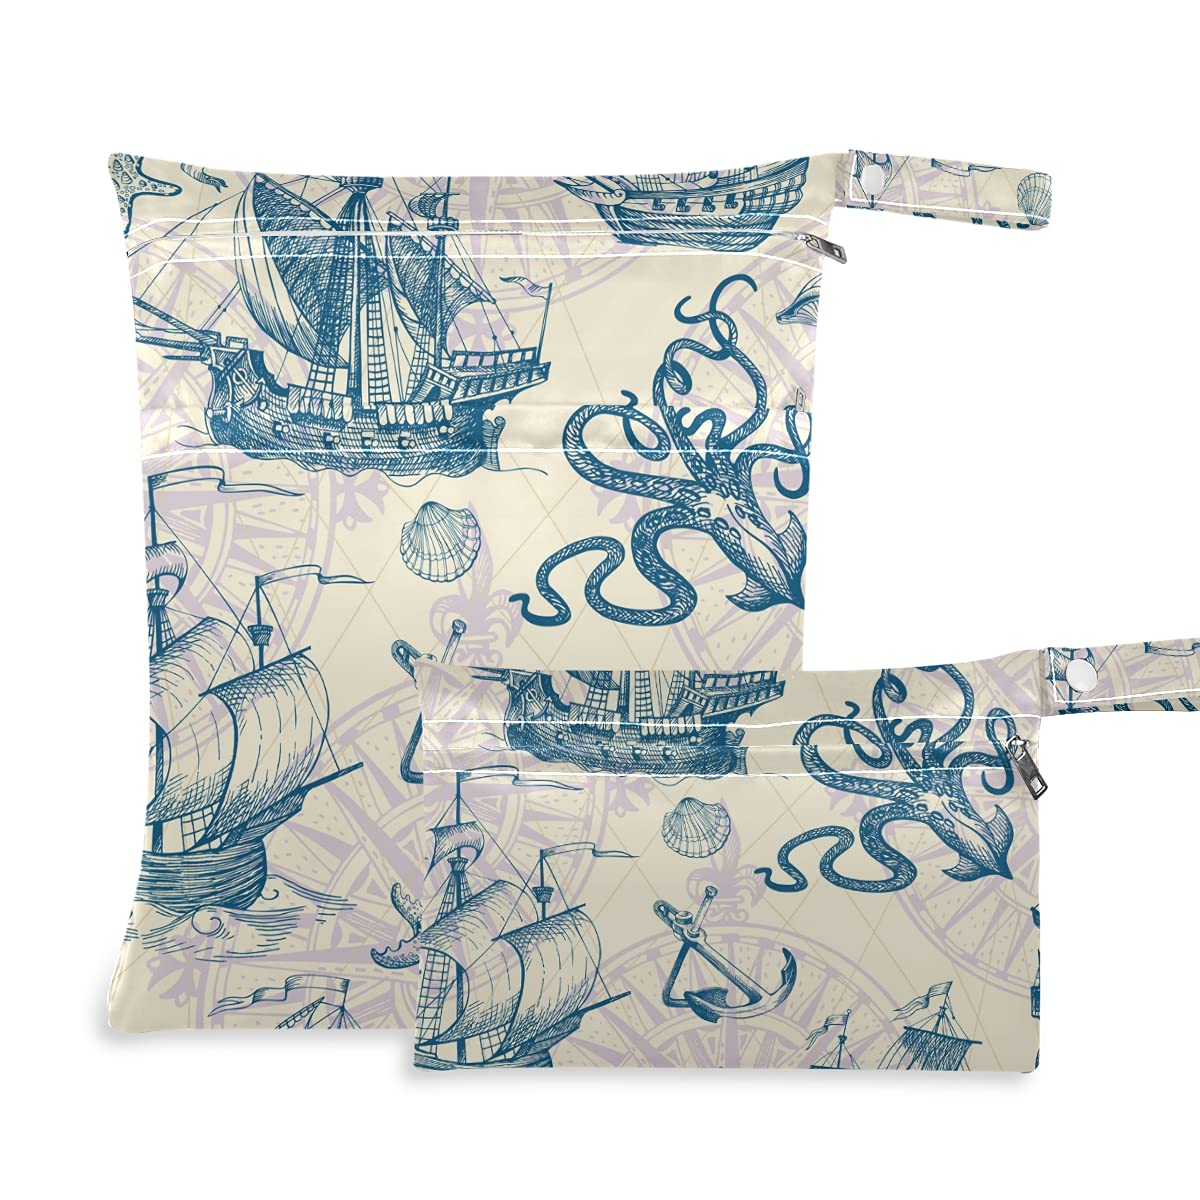 Vintage Sailboat Wet Max 48% OFF Dry Bag Popularity Swimsui for Reusable Diaper